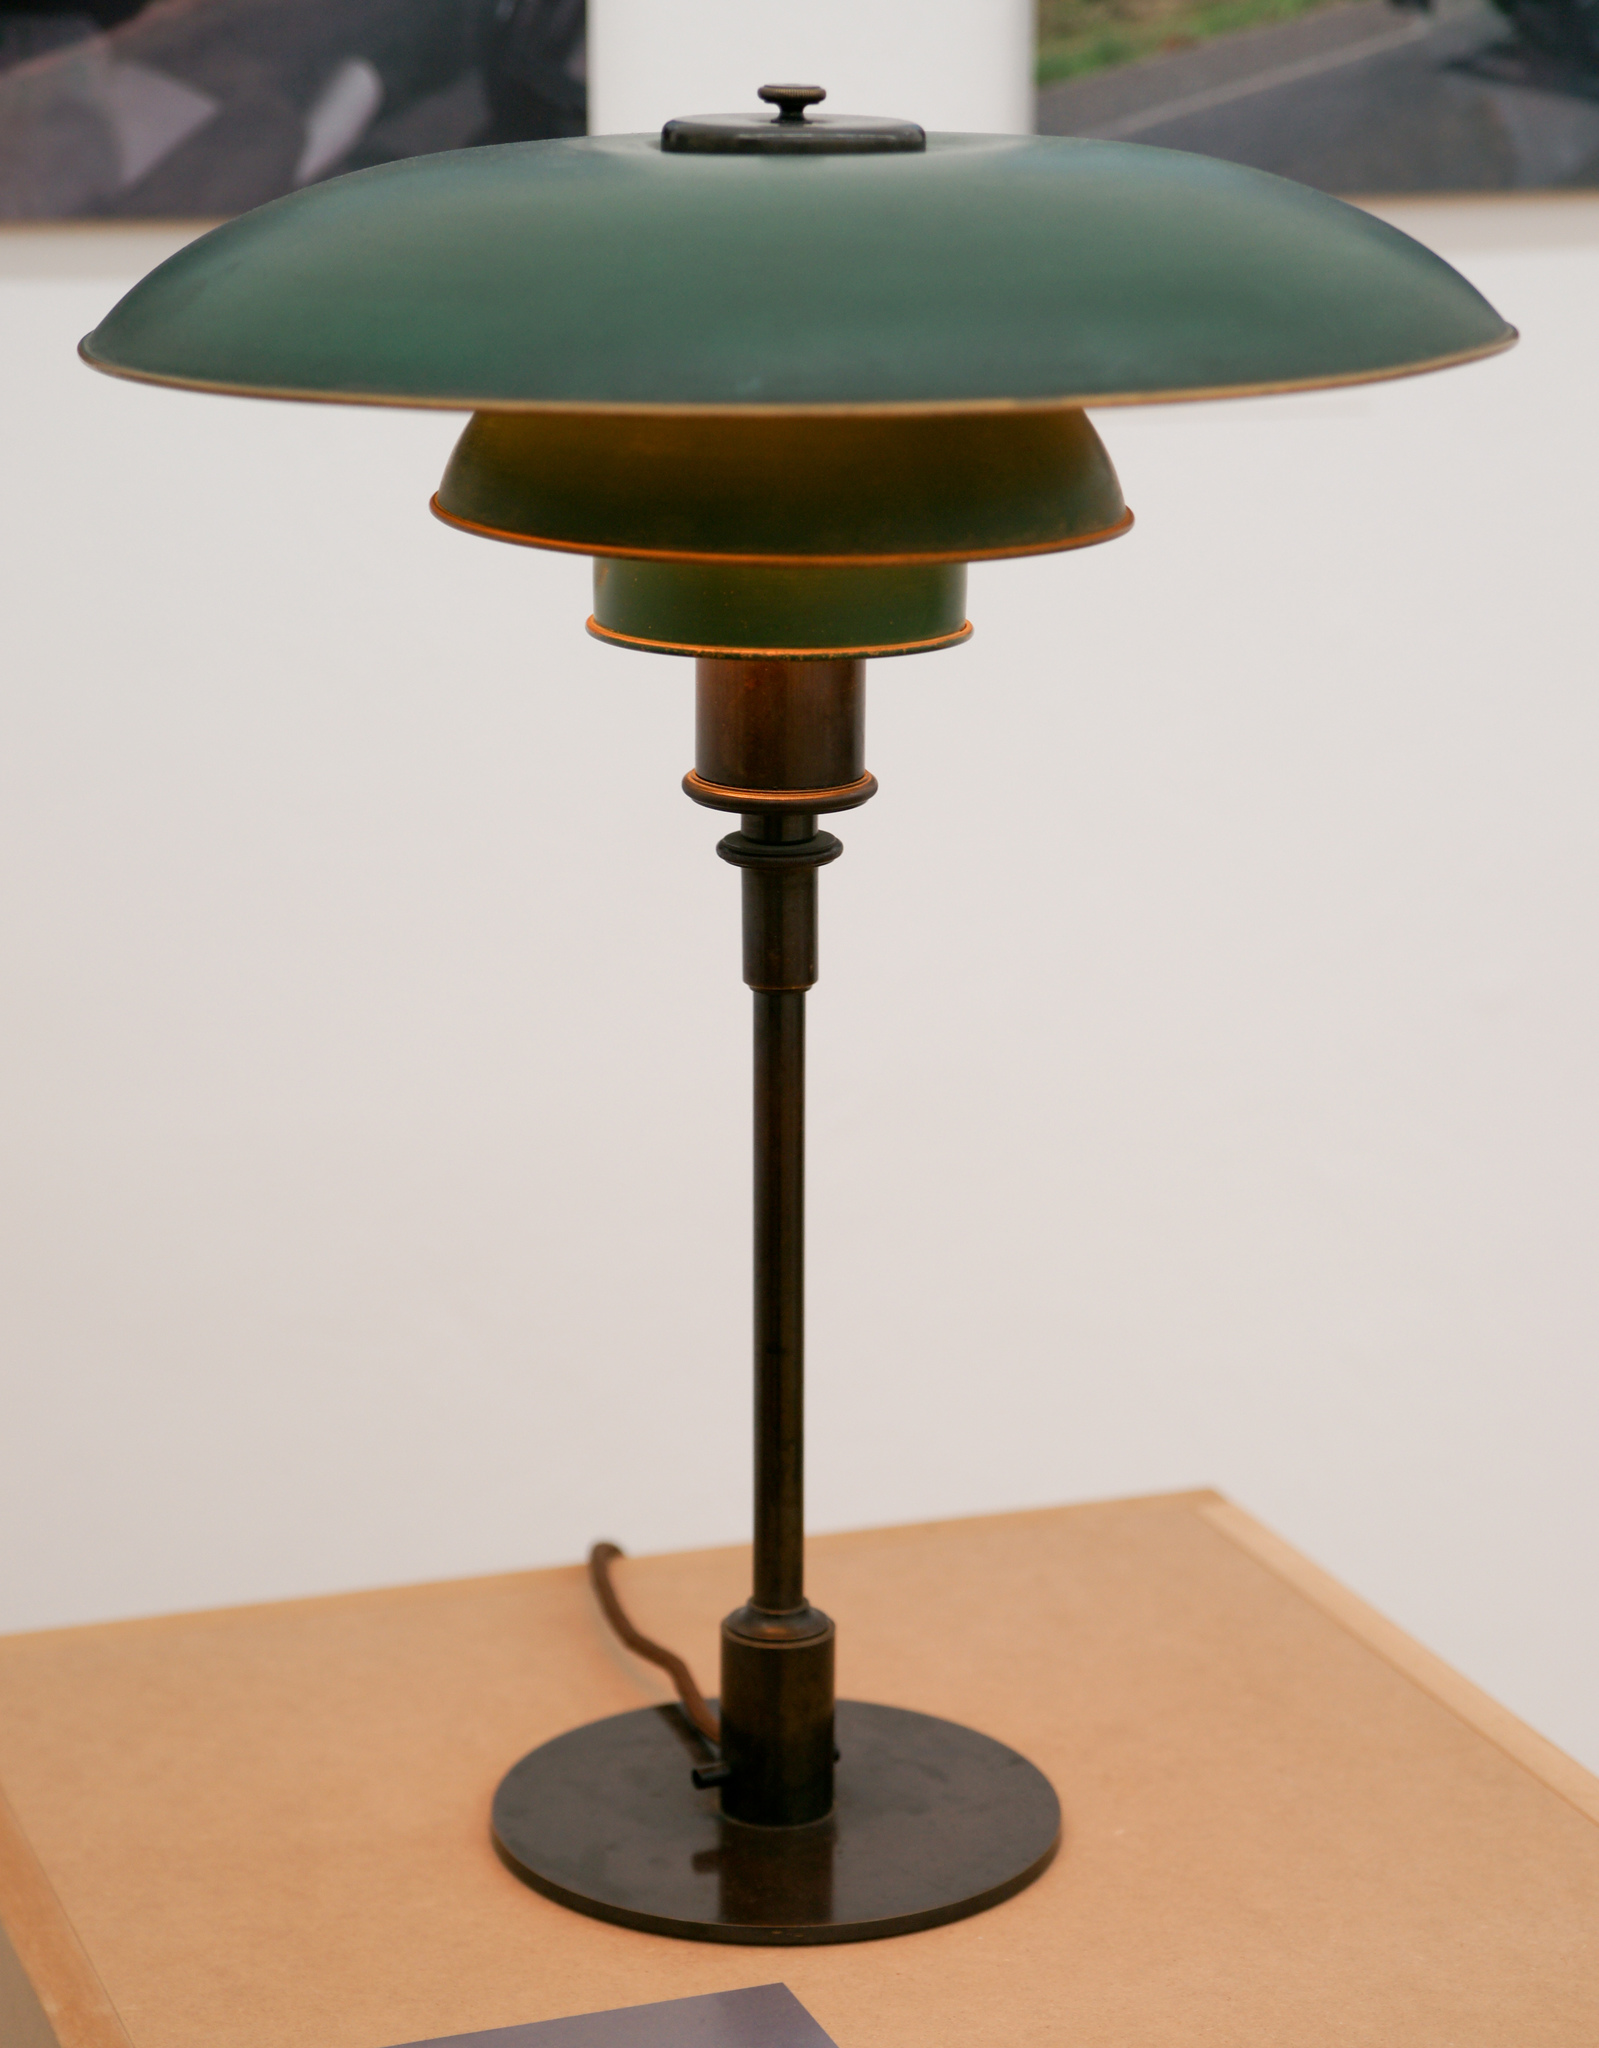 Louis Poulsen Ph 3 2 Replica Louis Poulsen Table Lamp By Poul Henningsen Buy In Online